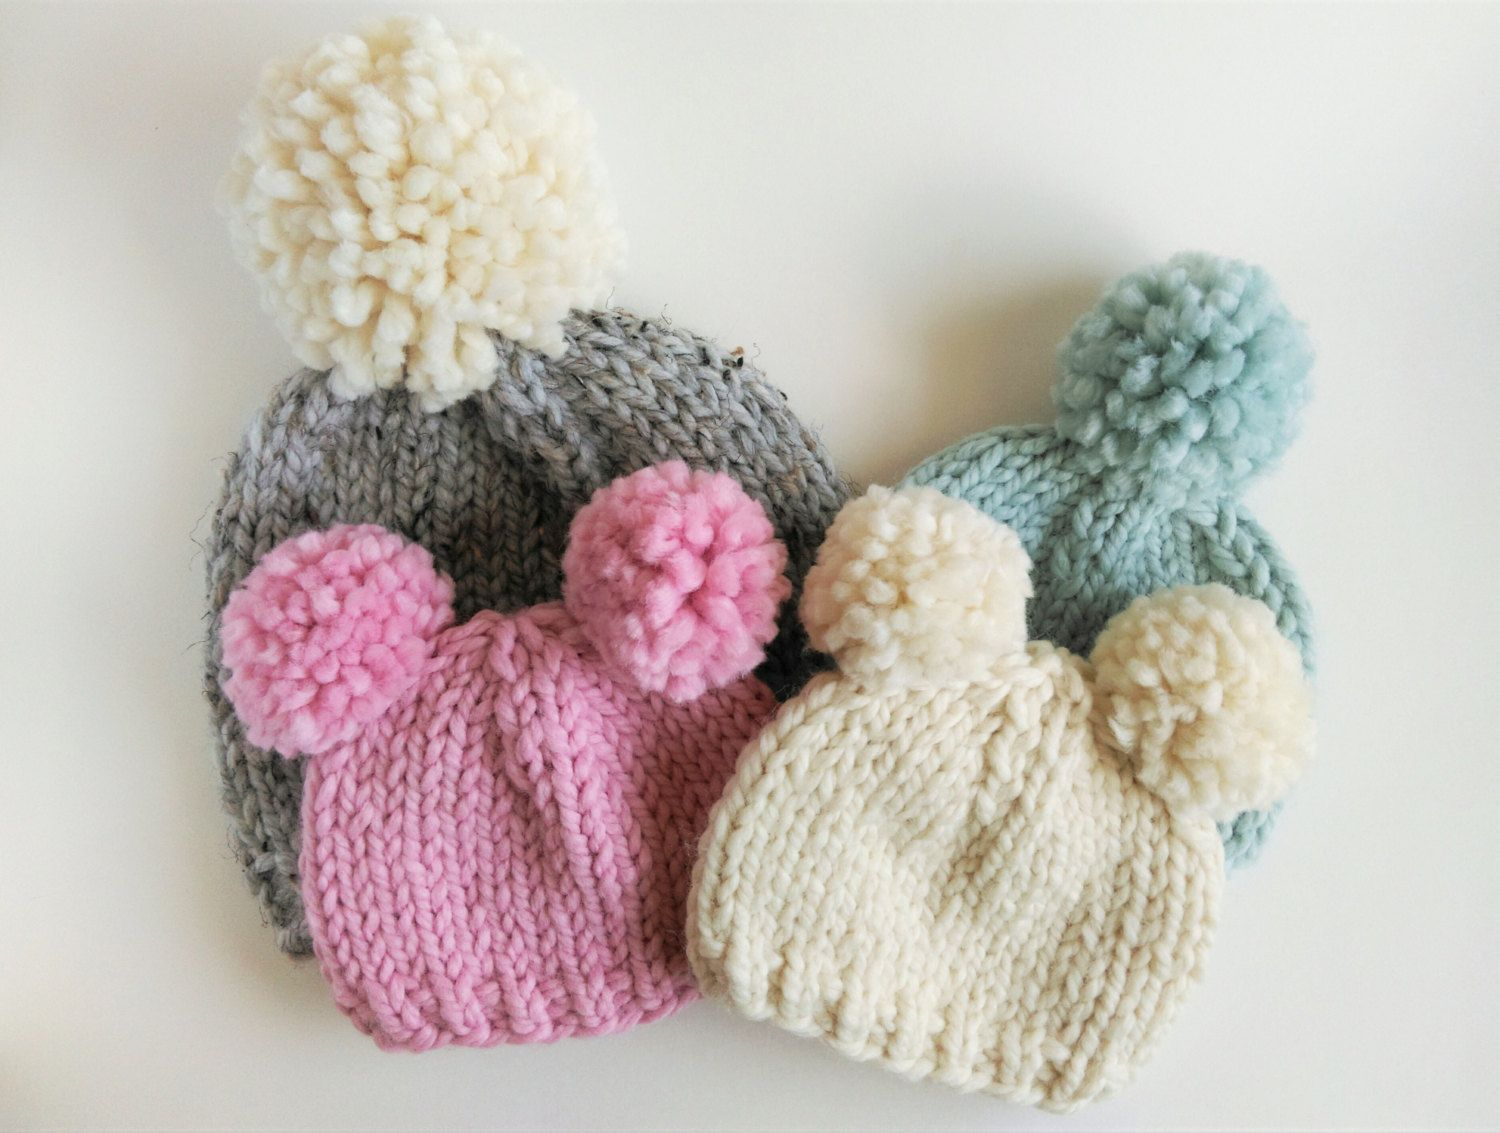 Knitting Pattern    Chunky Pom Pom Hat    Chunky Knit Hat Pattern    Beanie  Pattern    Hats for Toddlers Keep your loved ones warm and stylish with a  chunky ... 5f17e49324b